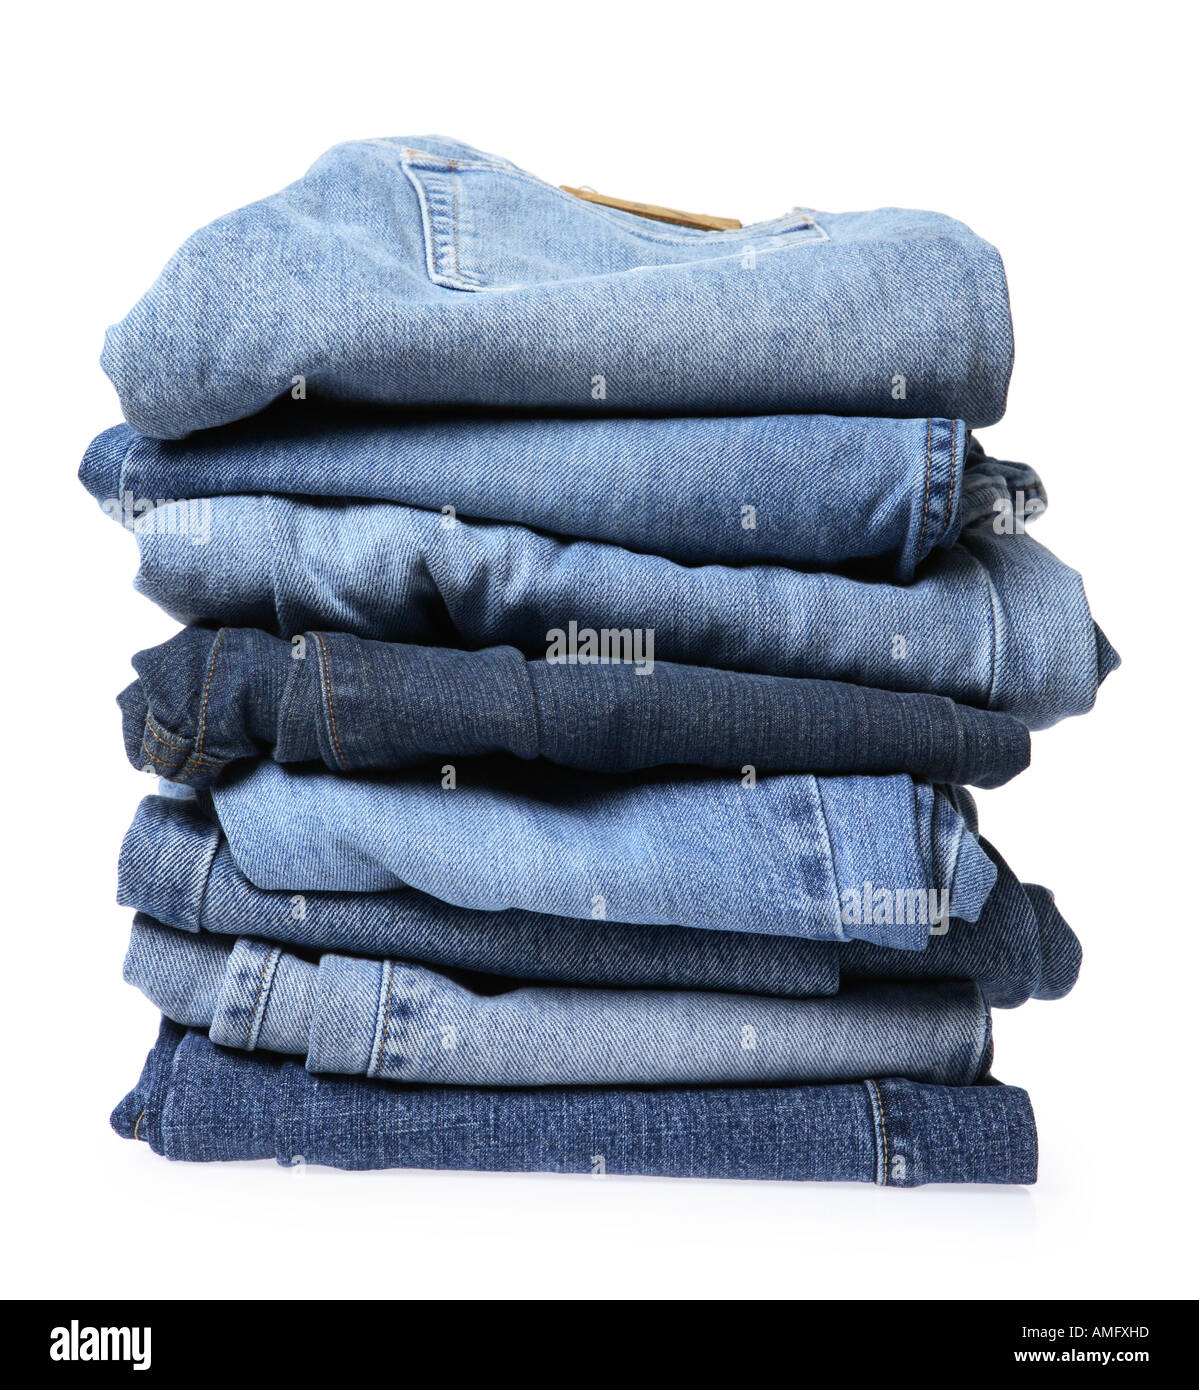 Blue Denim Jeans Stack - Stock Image